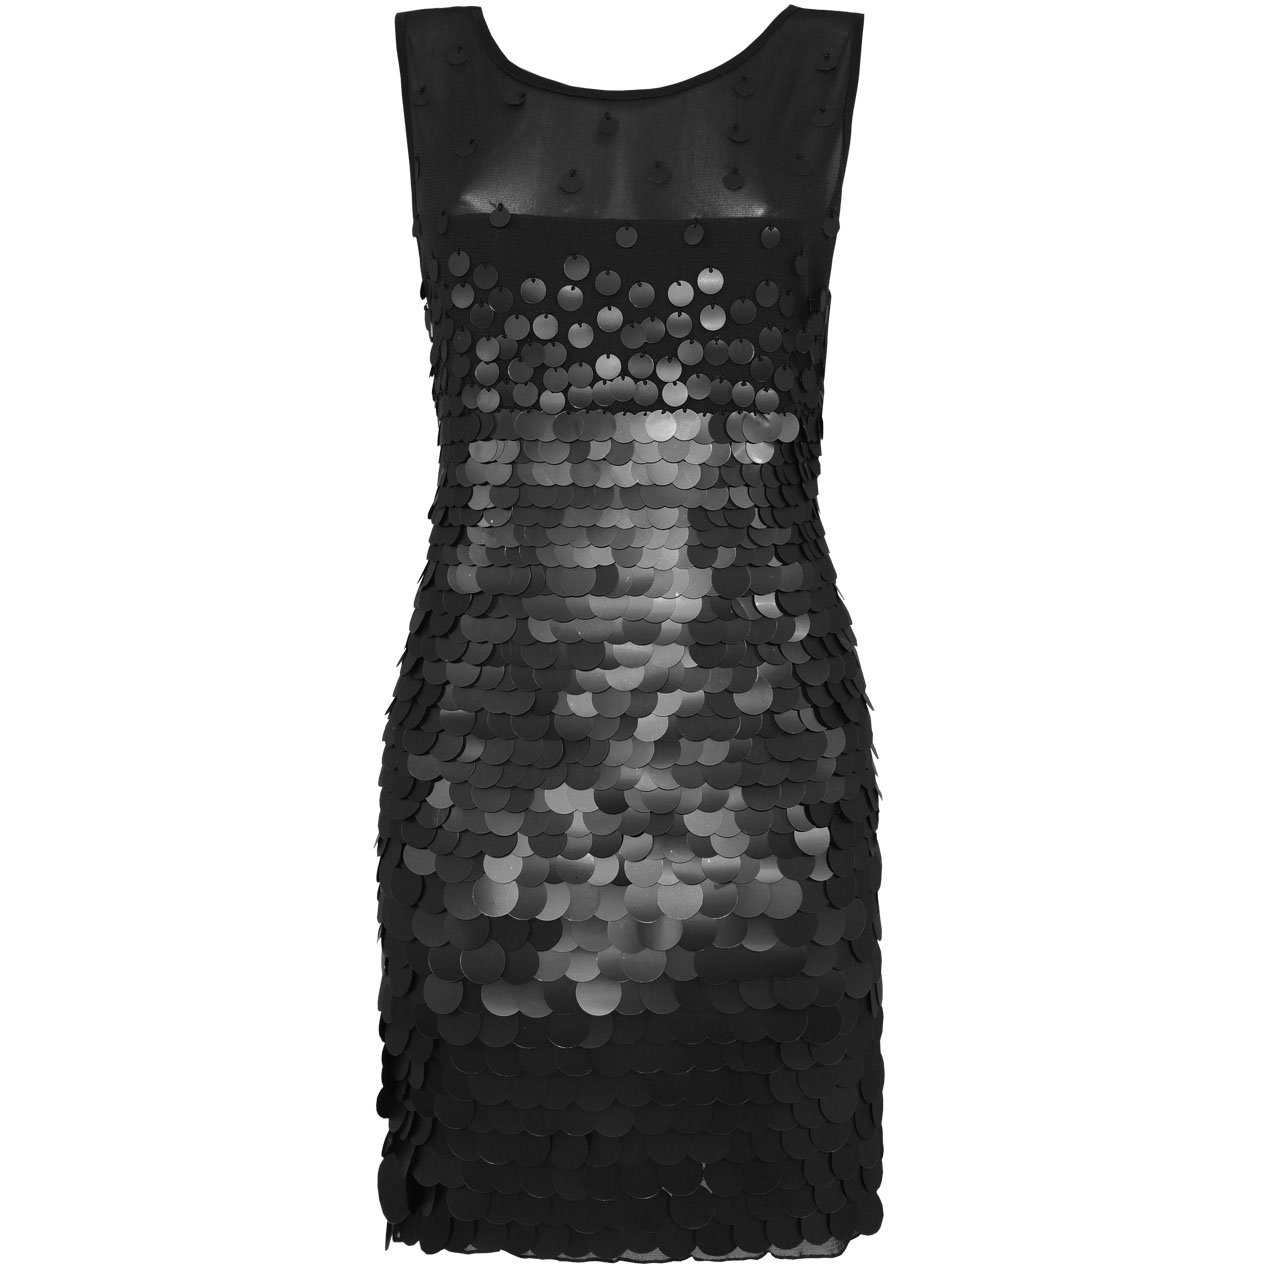 BLACK SEQUIN MESH BODYCON EVENING MINI COCKTAIL CLUBWEAR PARTY PROM DRESS UK SIZE 8-10, US SIZE 4-6